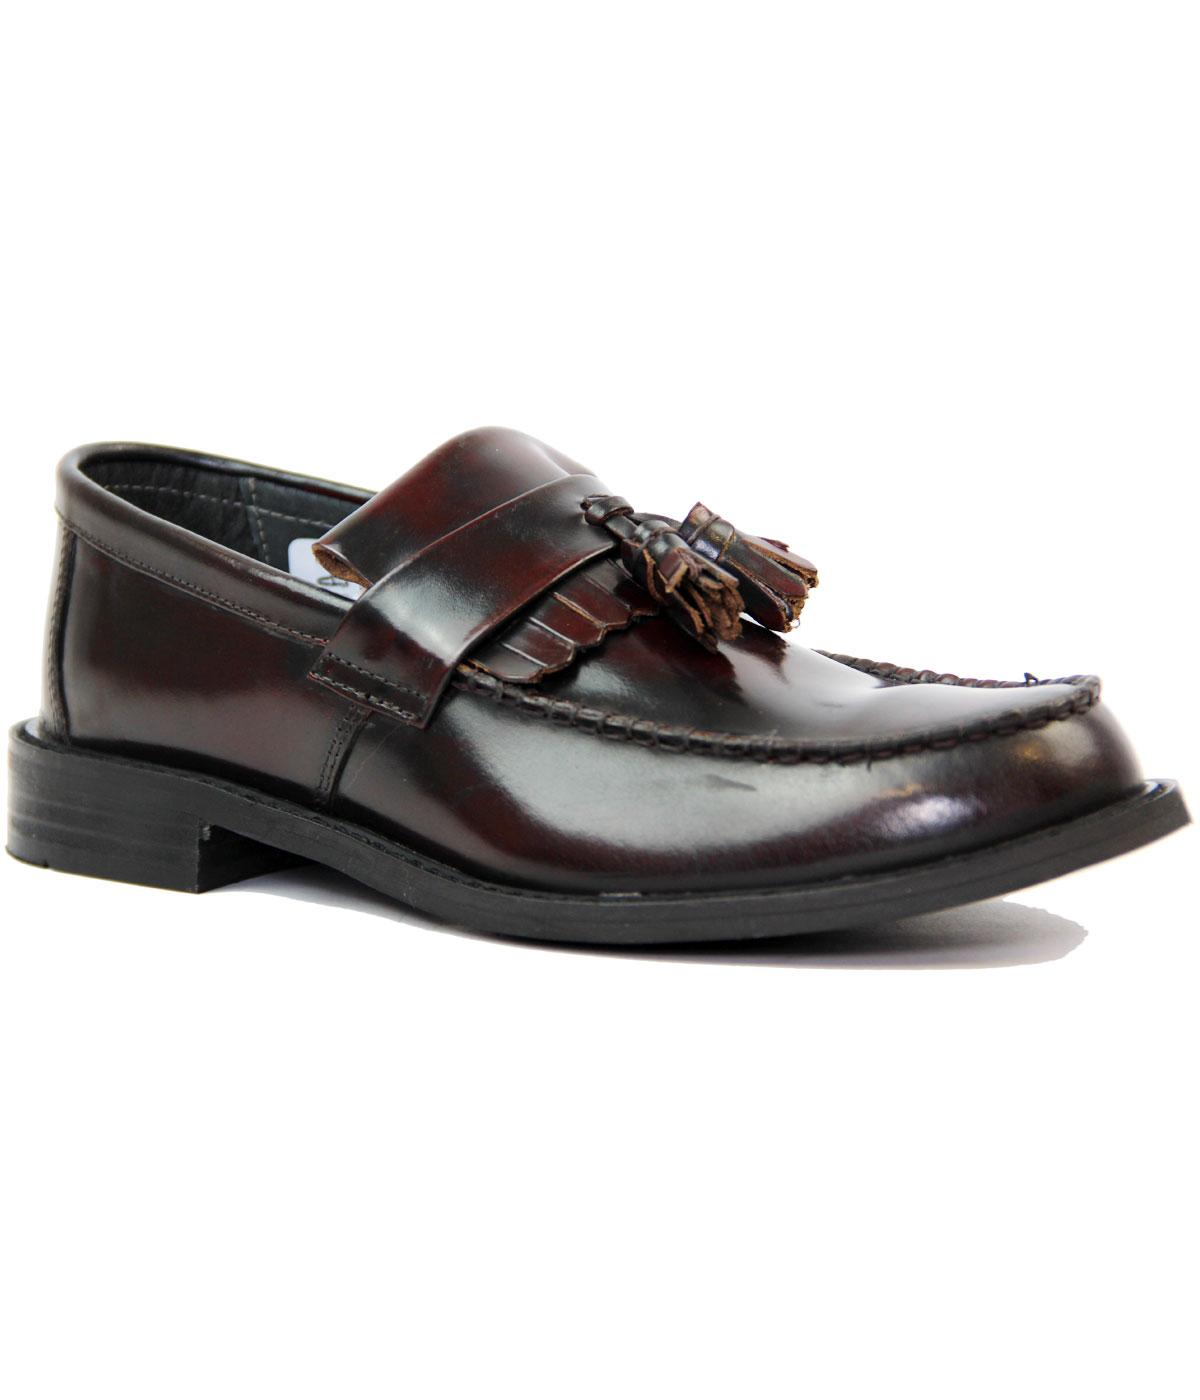 Retro Mod Tassel Fringe Leather Loafers (Oxblood)